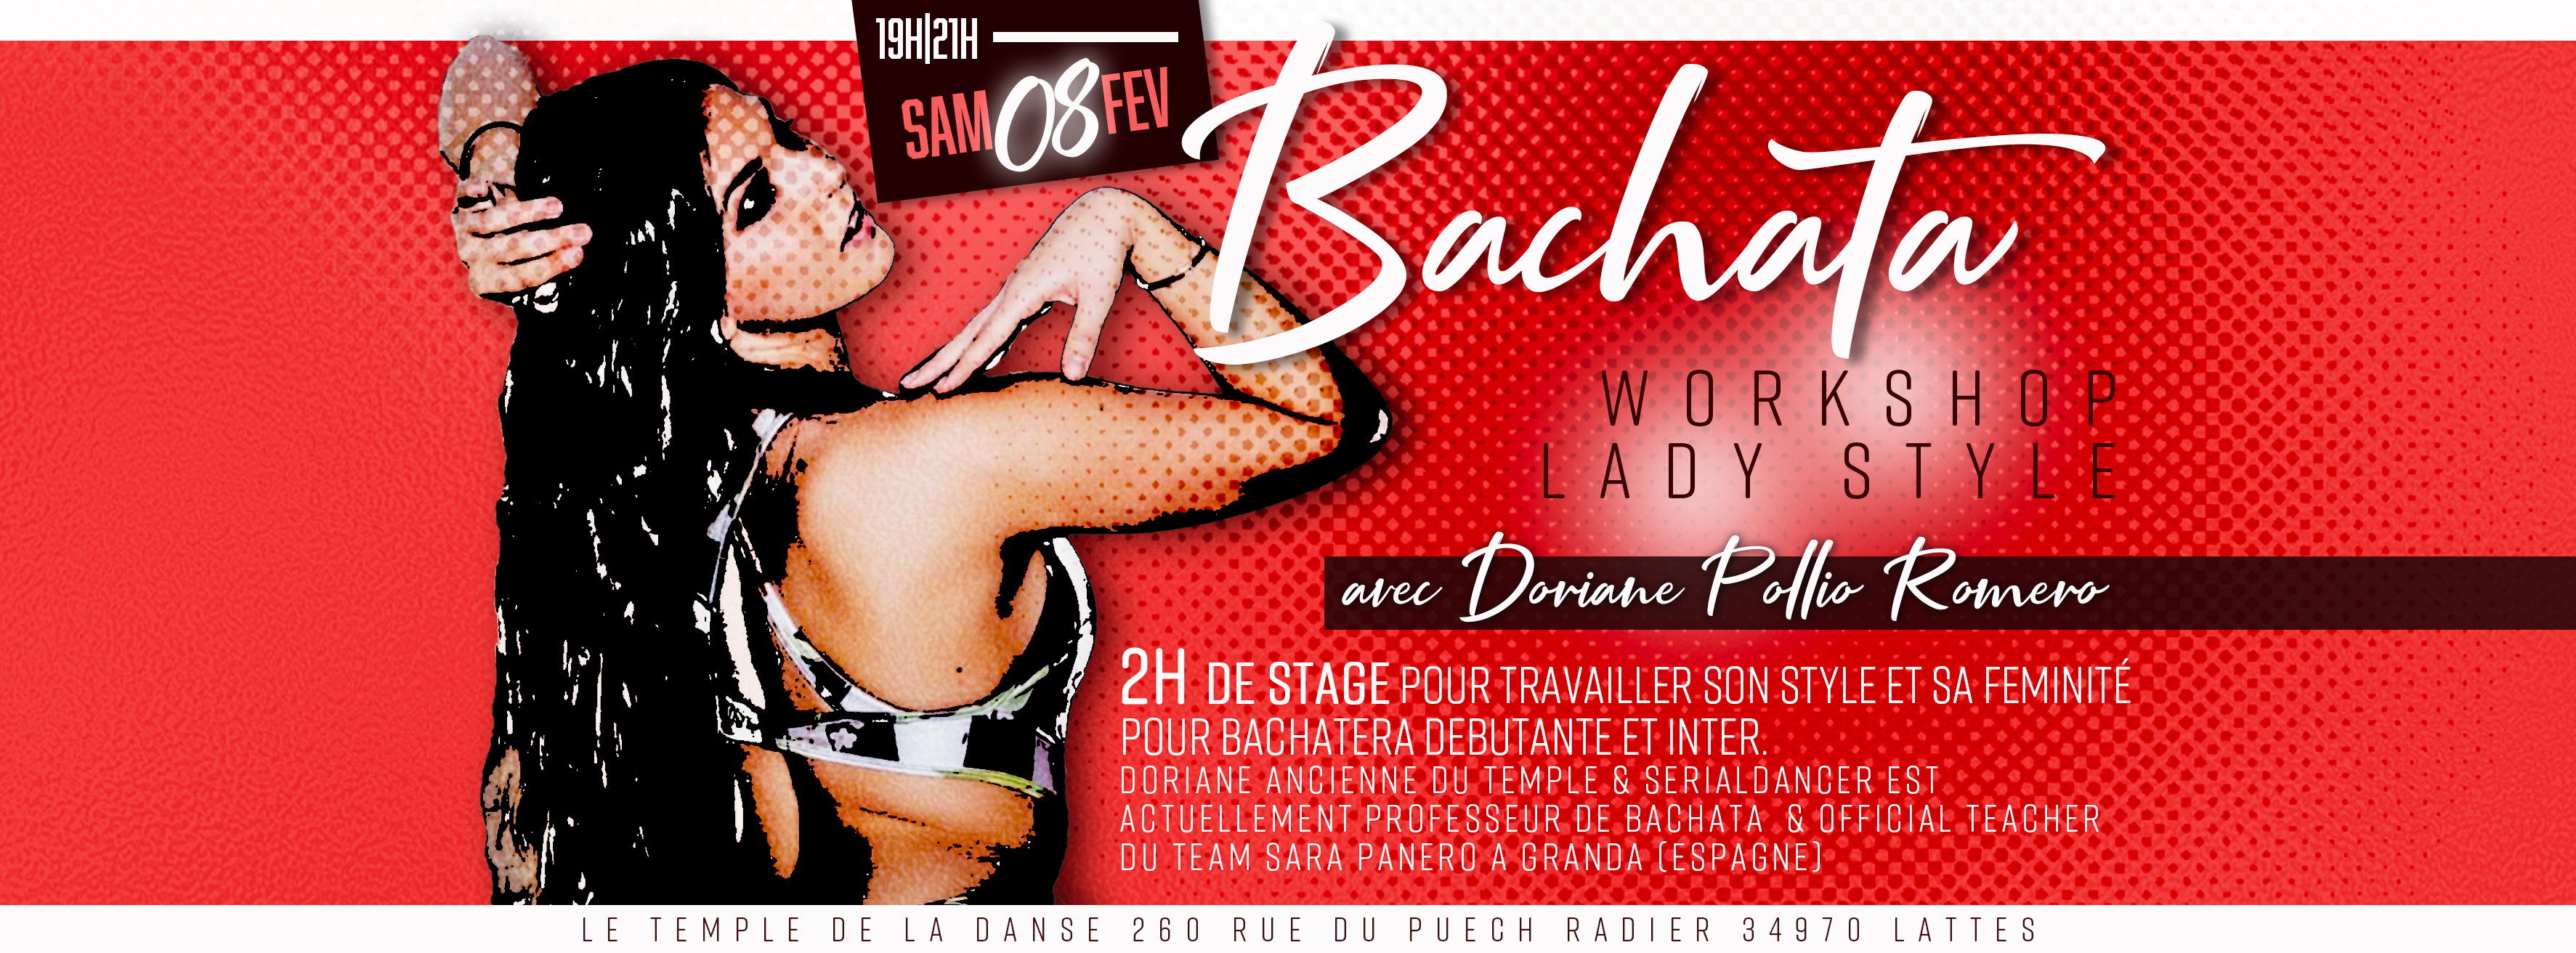 Stage Lady Bachata – sam08fev